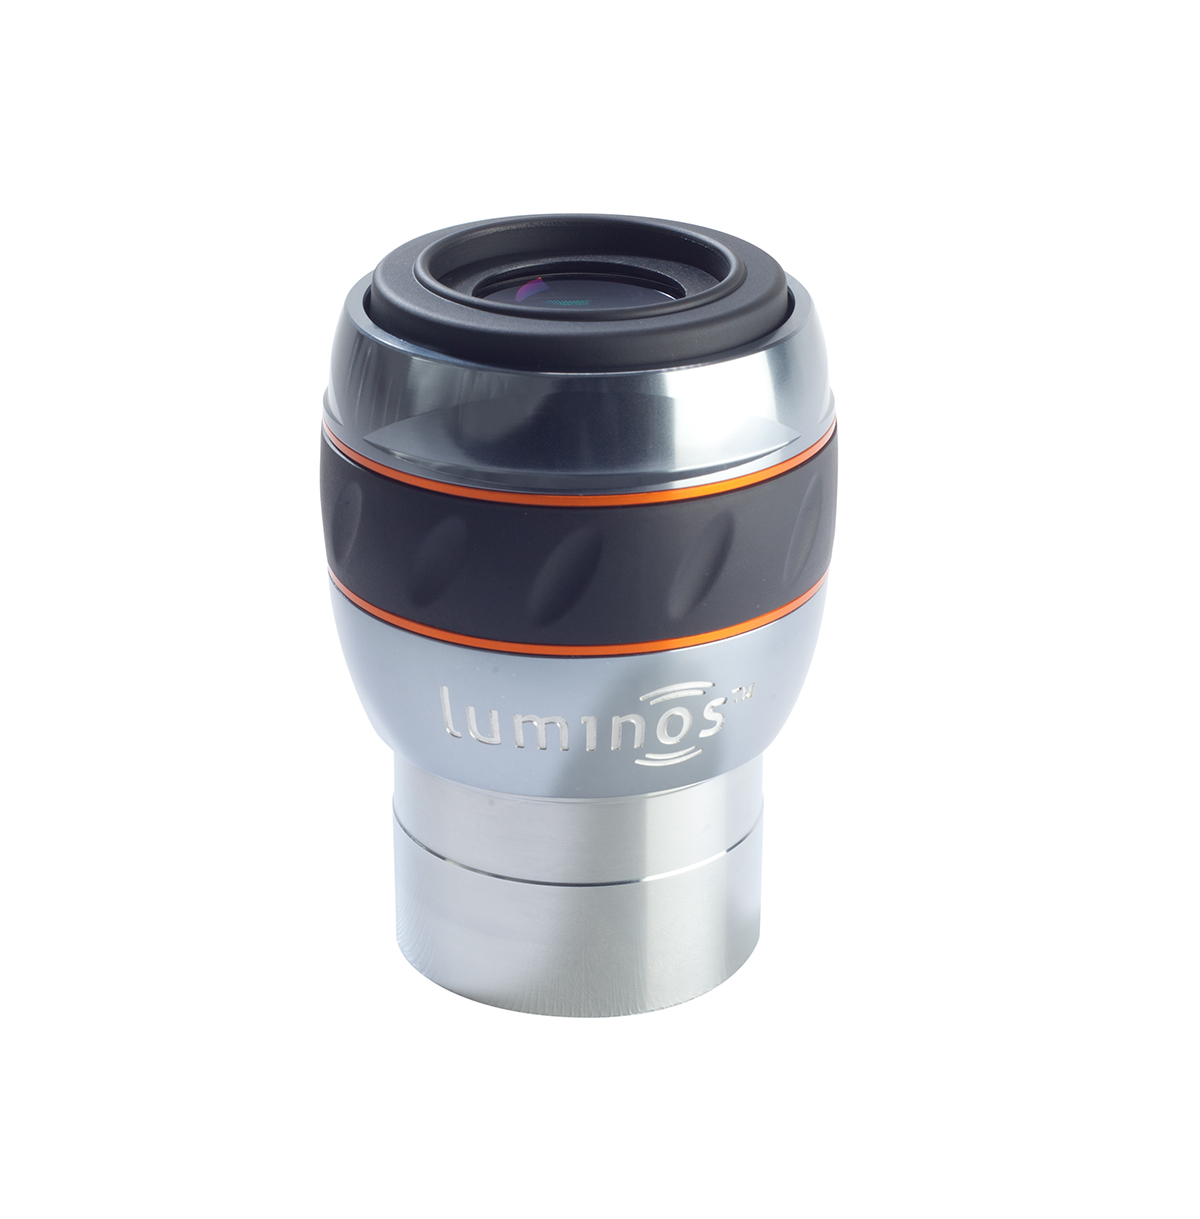 Celestron Luminos 19 mm Eyepiece